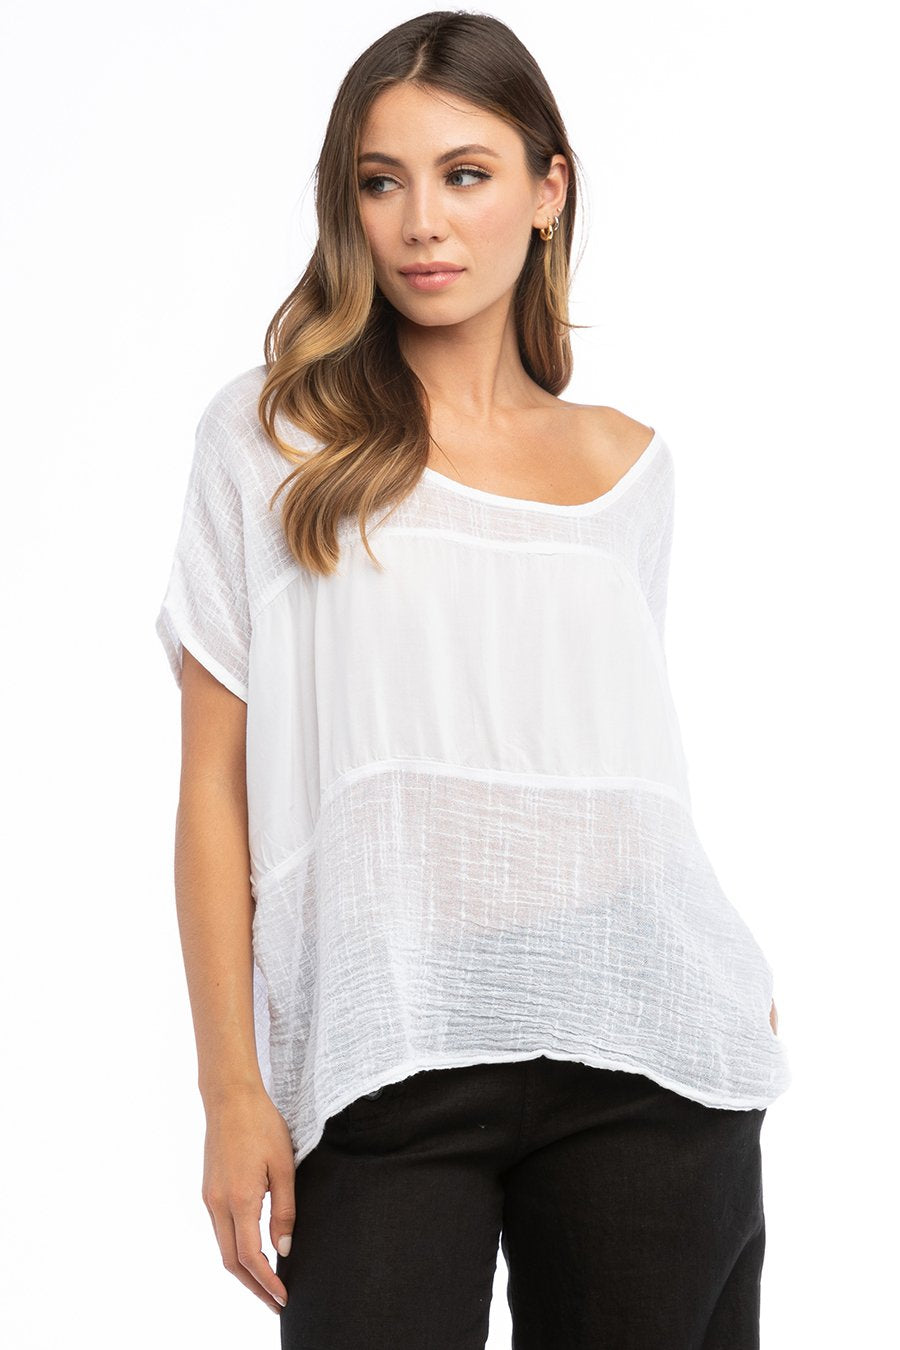 Hard Tail Forever Tango Gauze Slouchy Inset Top - White - XS